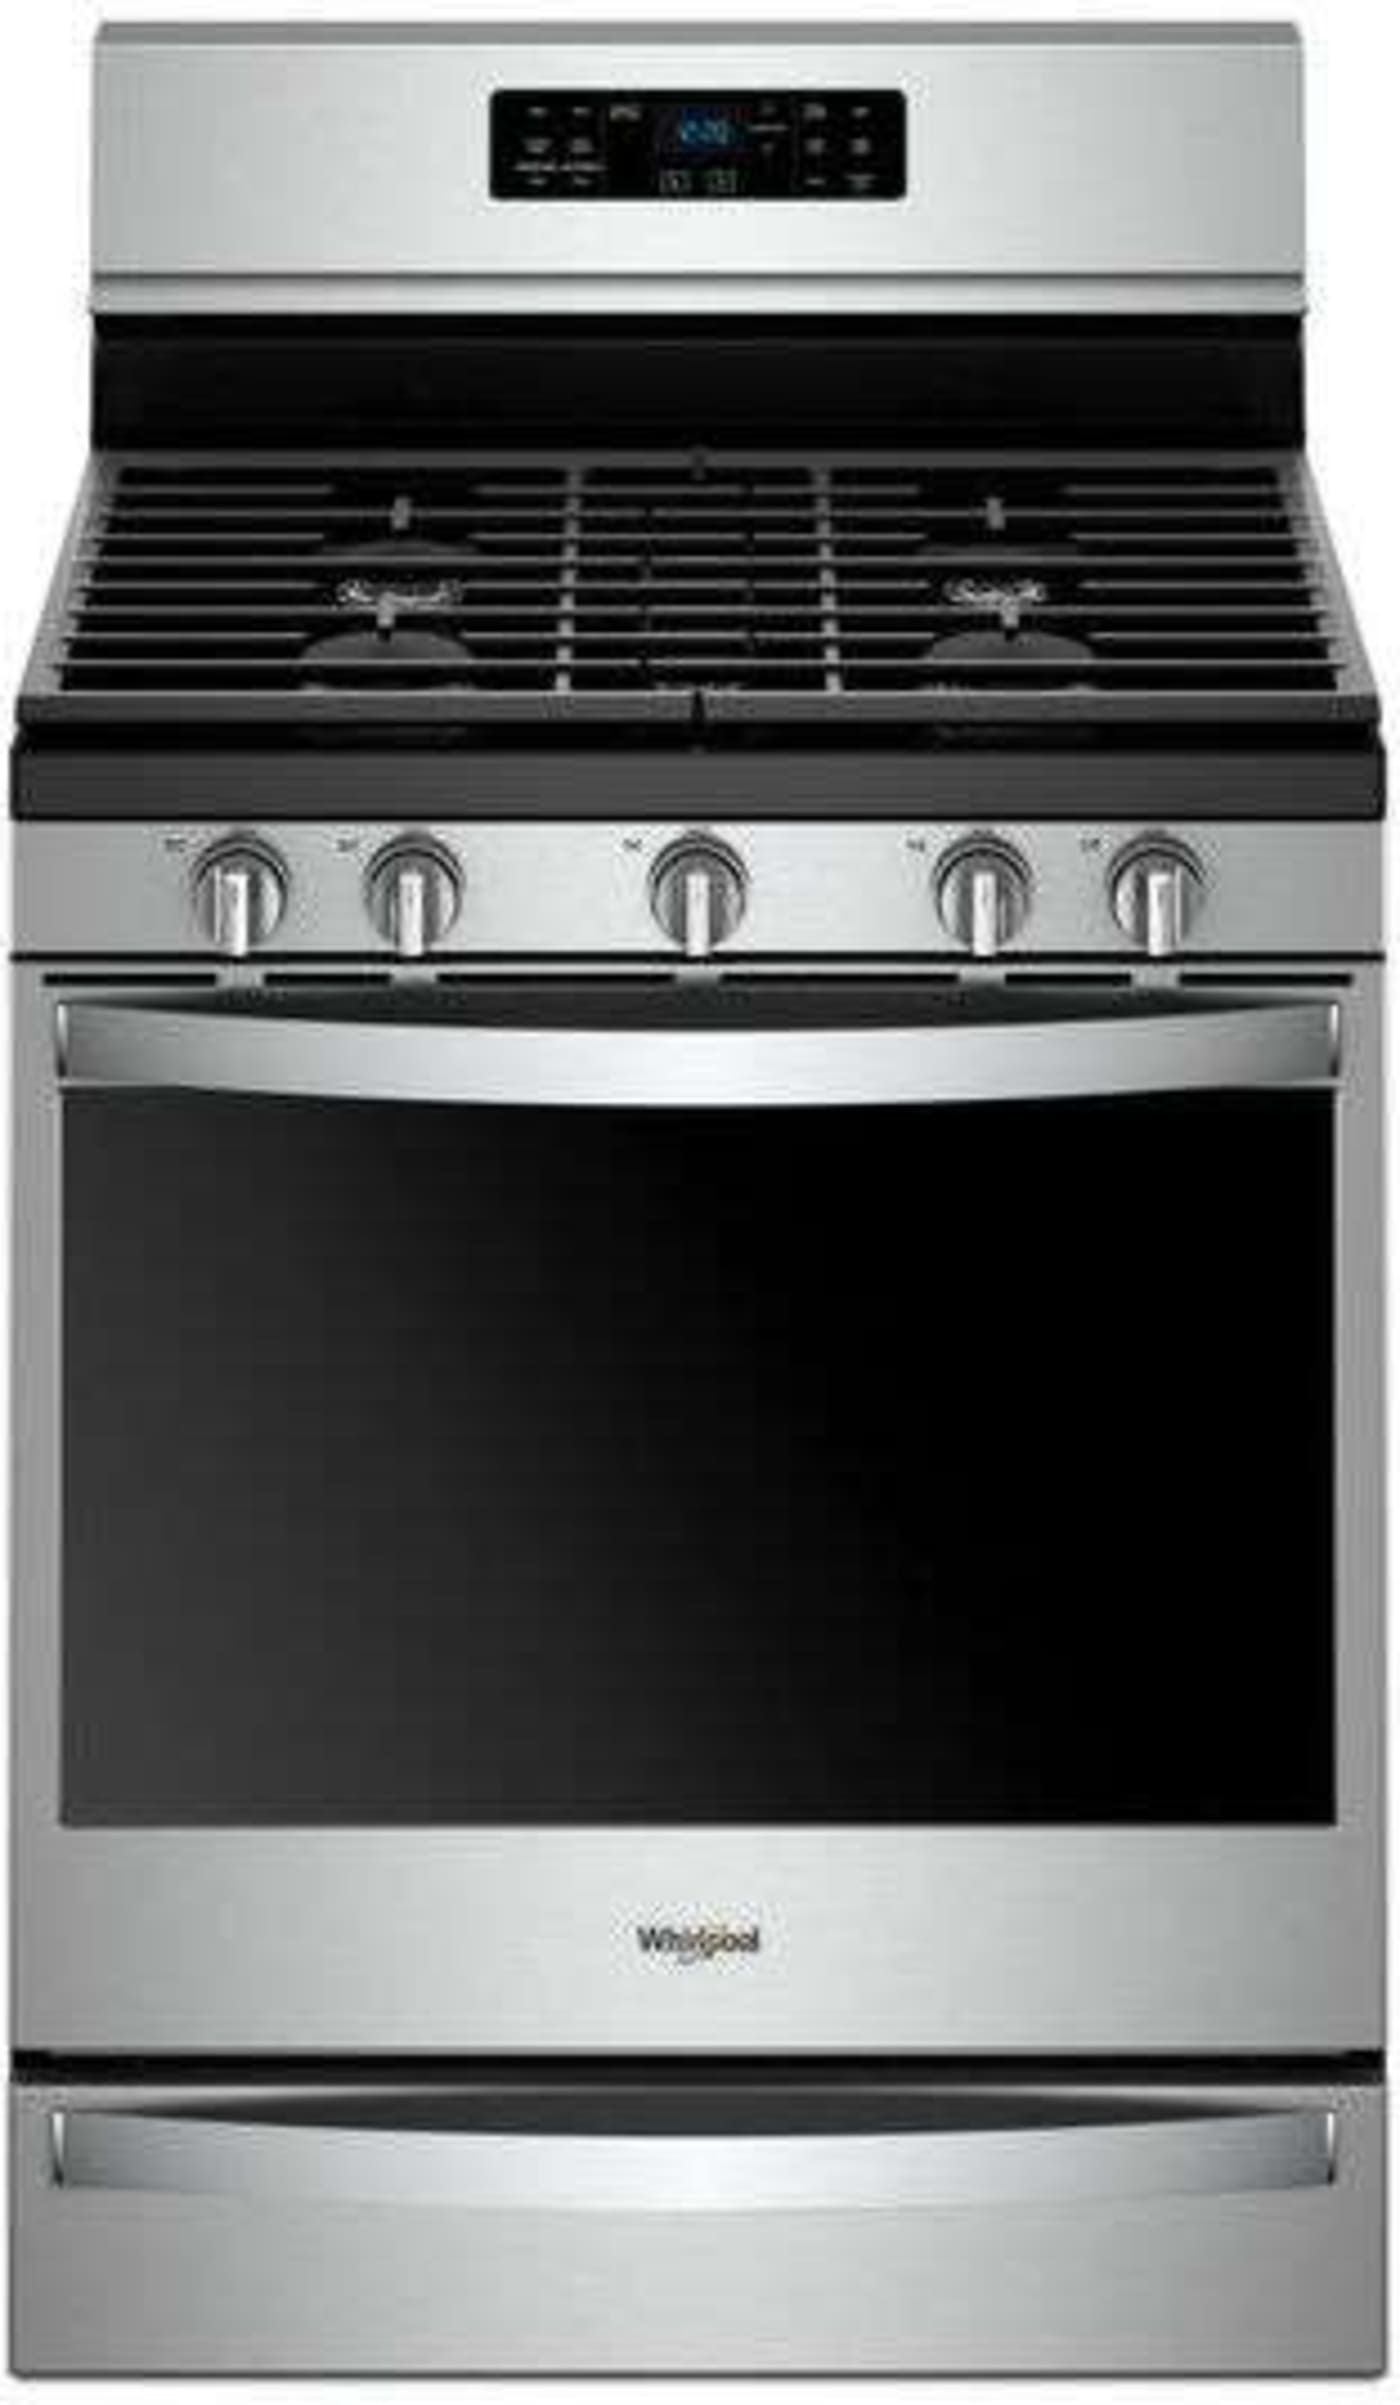 whirlpool wfg775h0hz in 2019 hot sellers convection cooking gas rh pinterest com